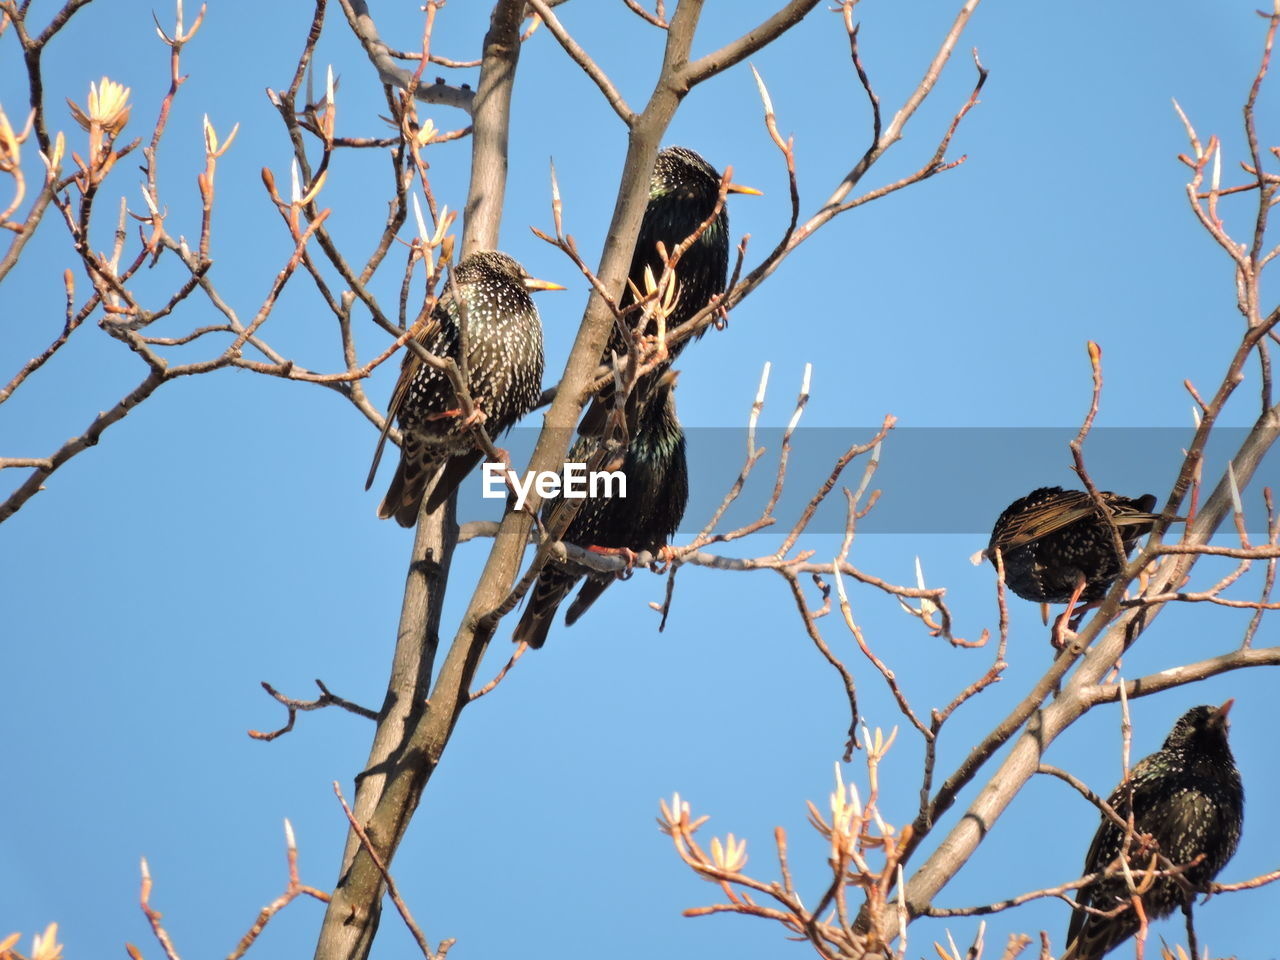 bird, vertebrate, animal wildlife, animal, animal themes, animals in the wild, tree, group of animals, low angle view, sky, branch, perching, plant, nature, no people, day, clear sky, starling, two animals, bare tree, outdoors, animal family